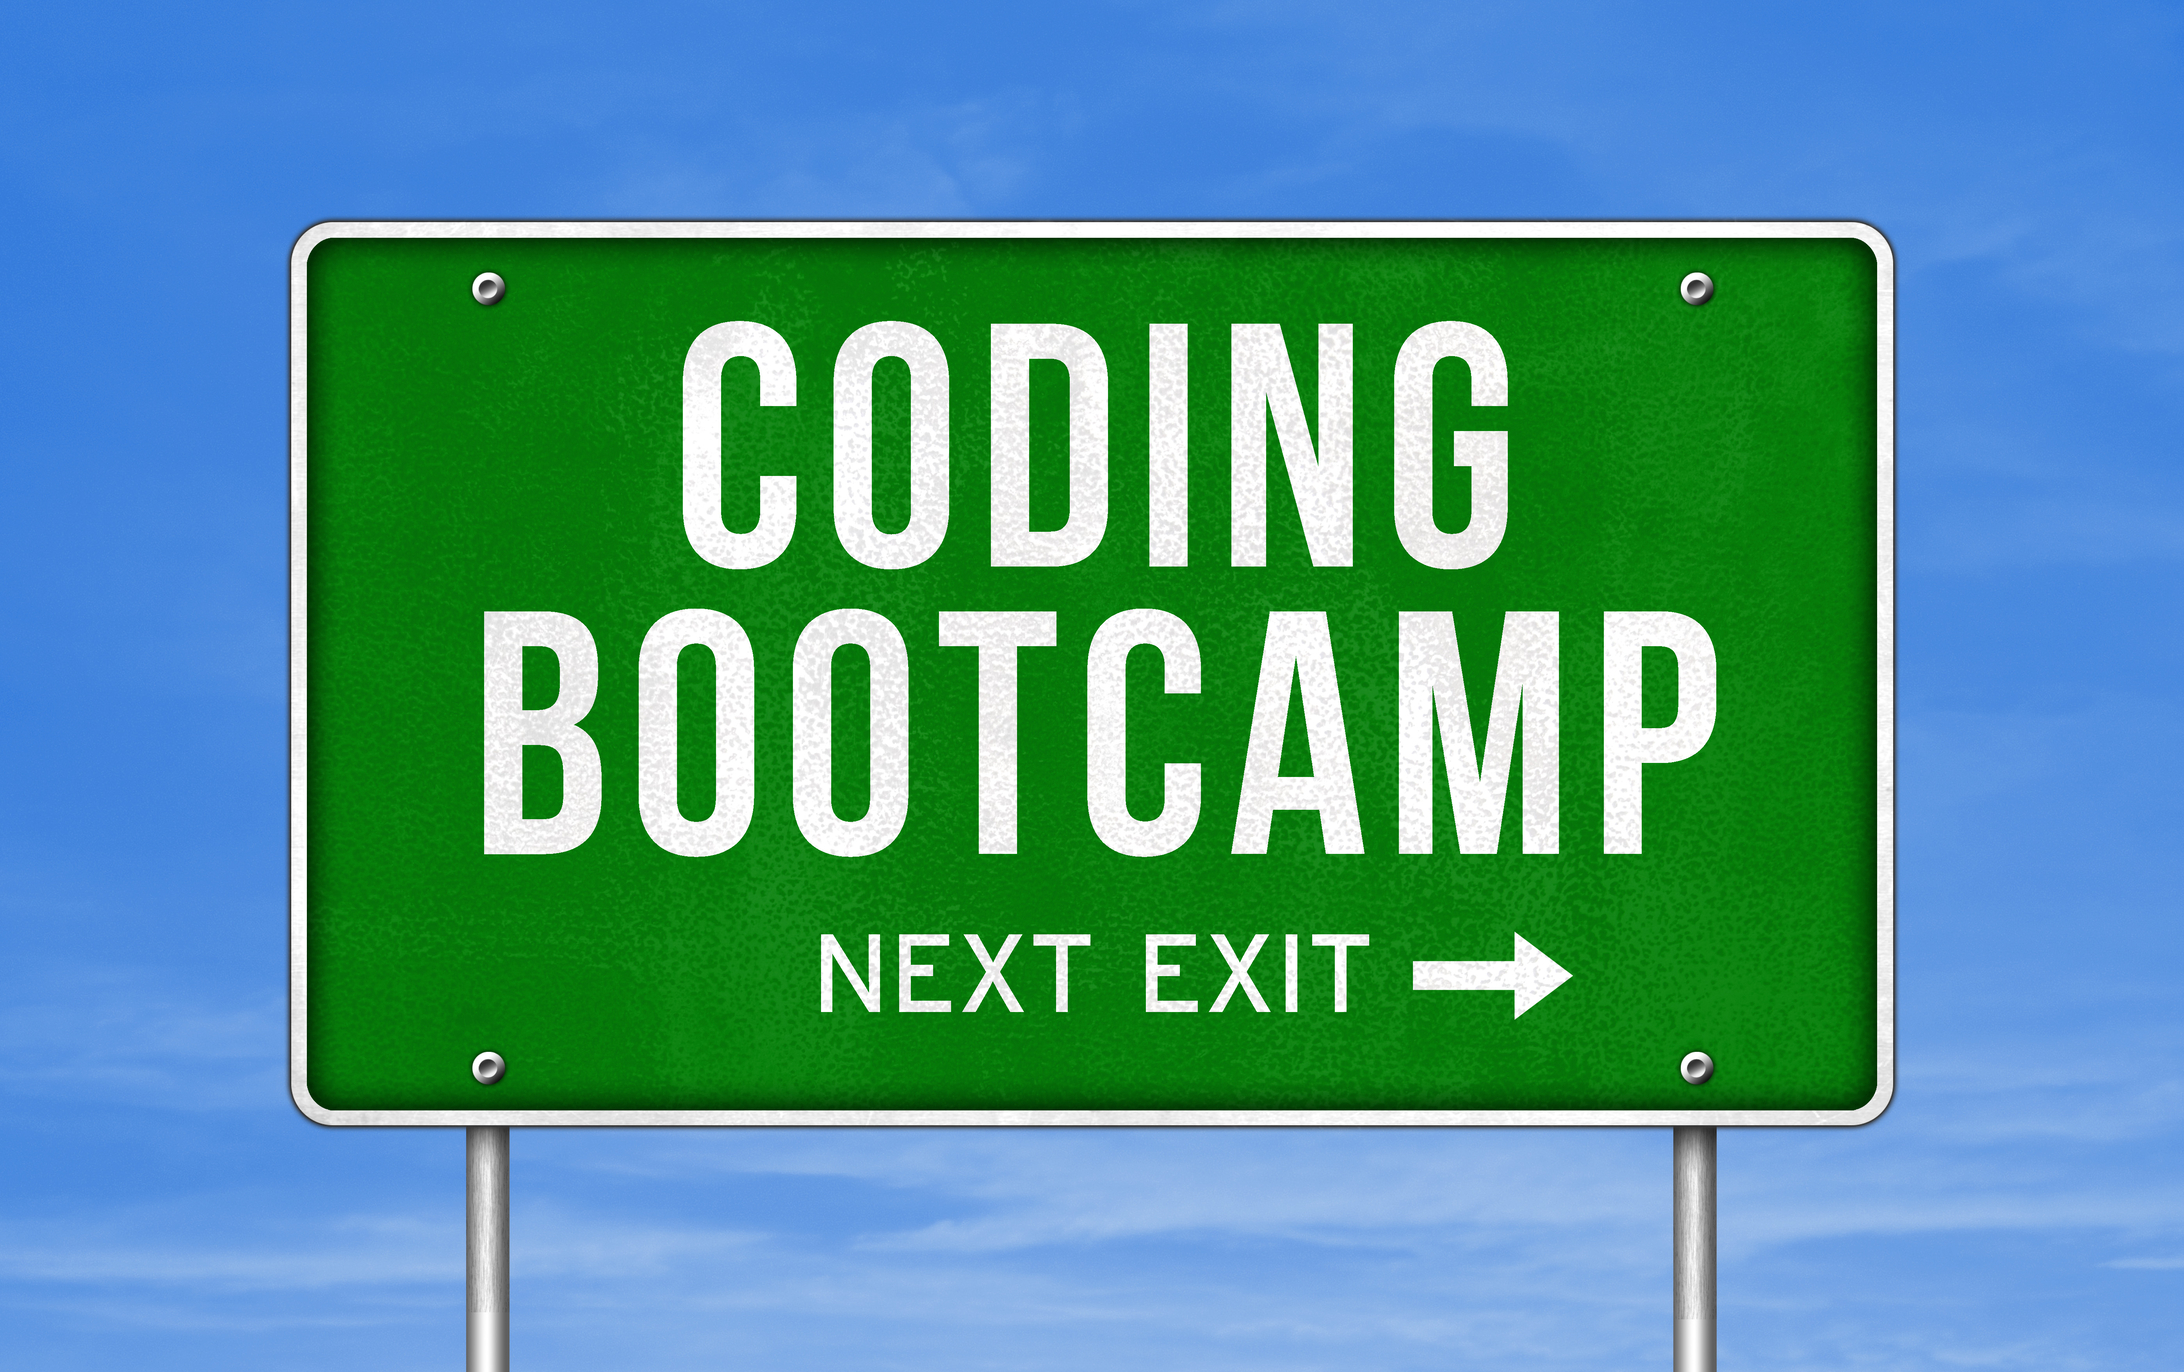 Freeway Exit Sign that says Coding Bootcamp Next Exit with Blue sky behind it Career Switch